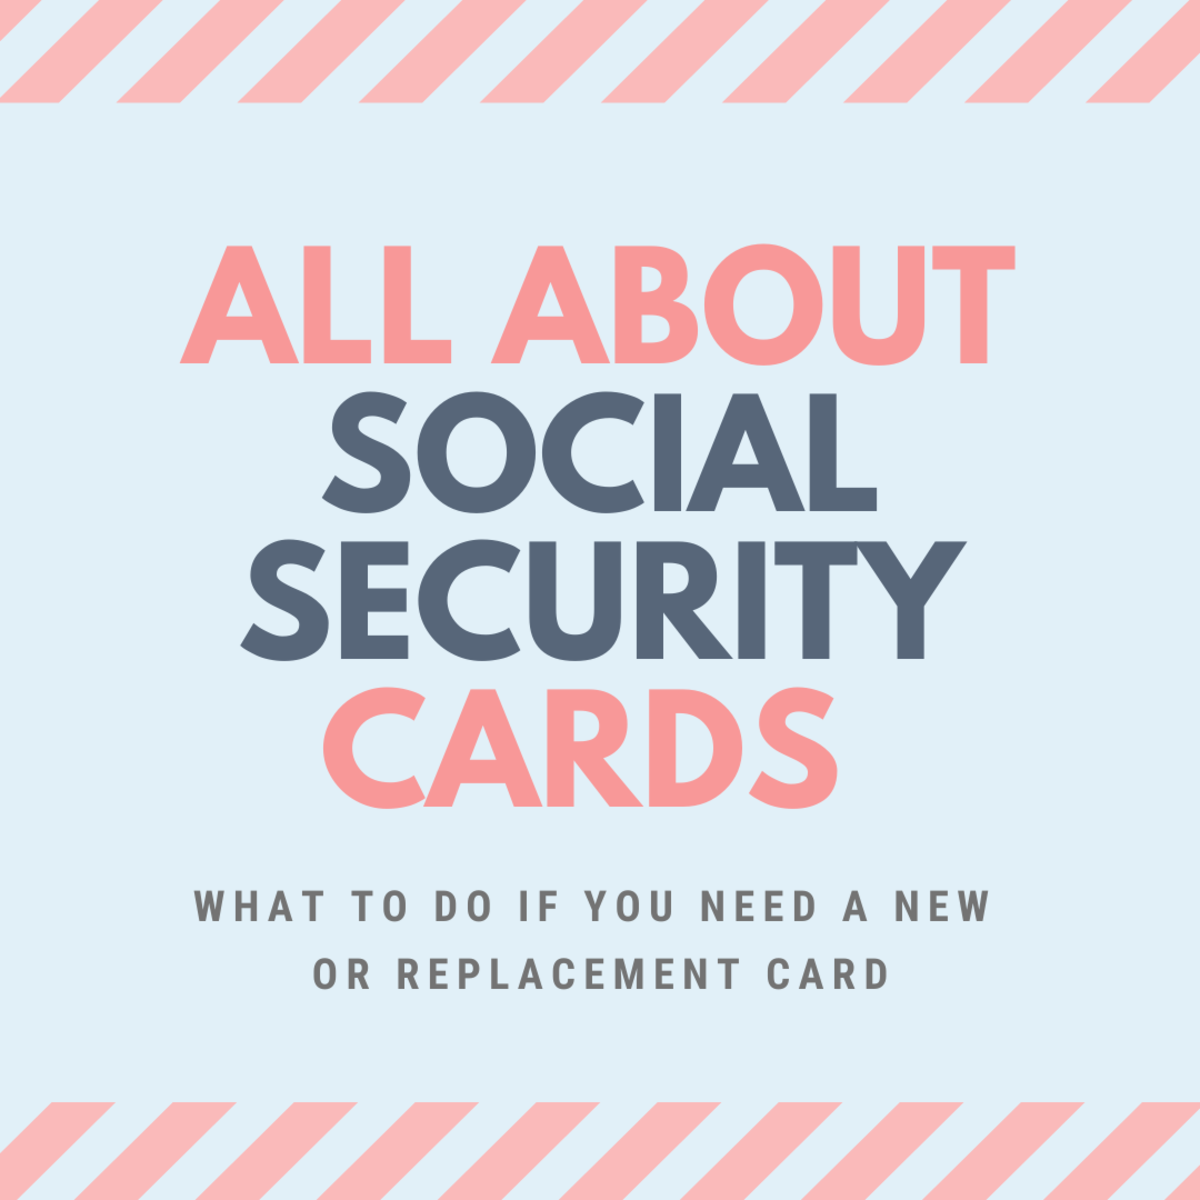 If your card is missing, this guide will help you.